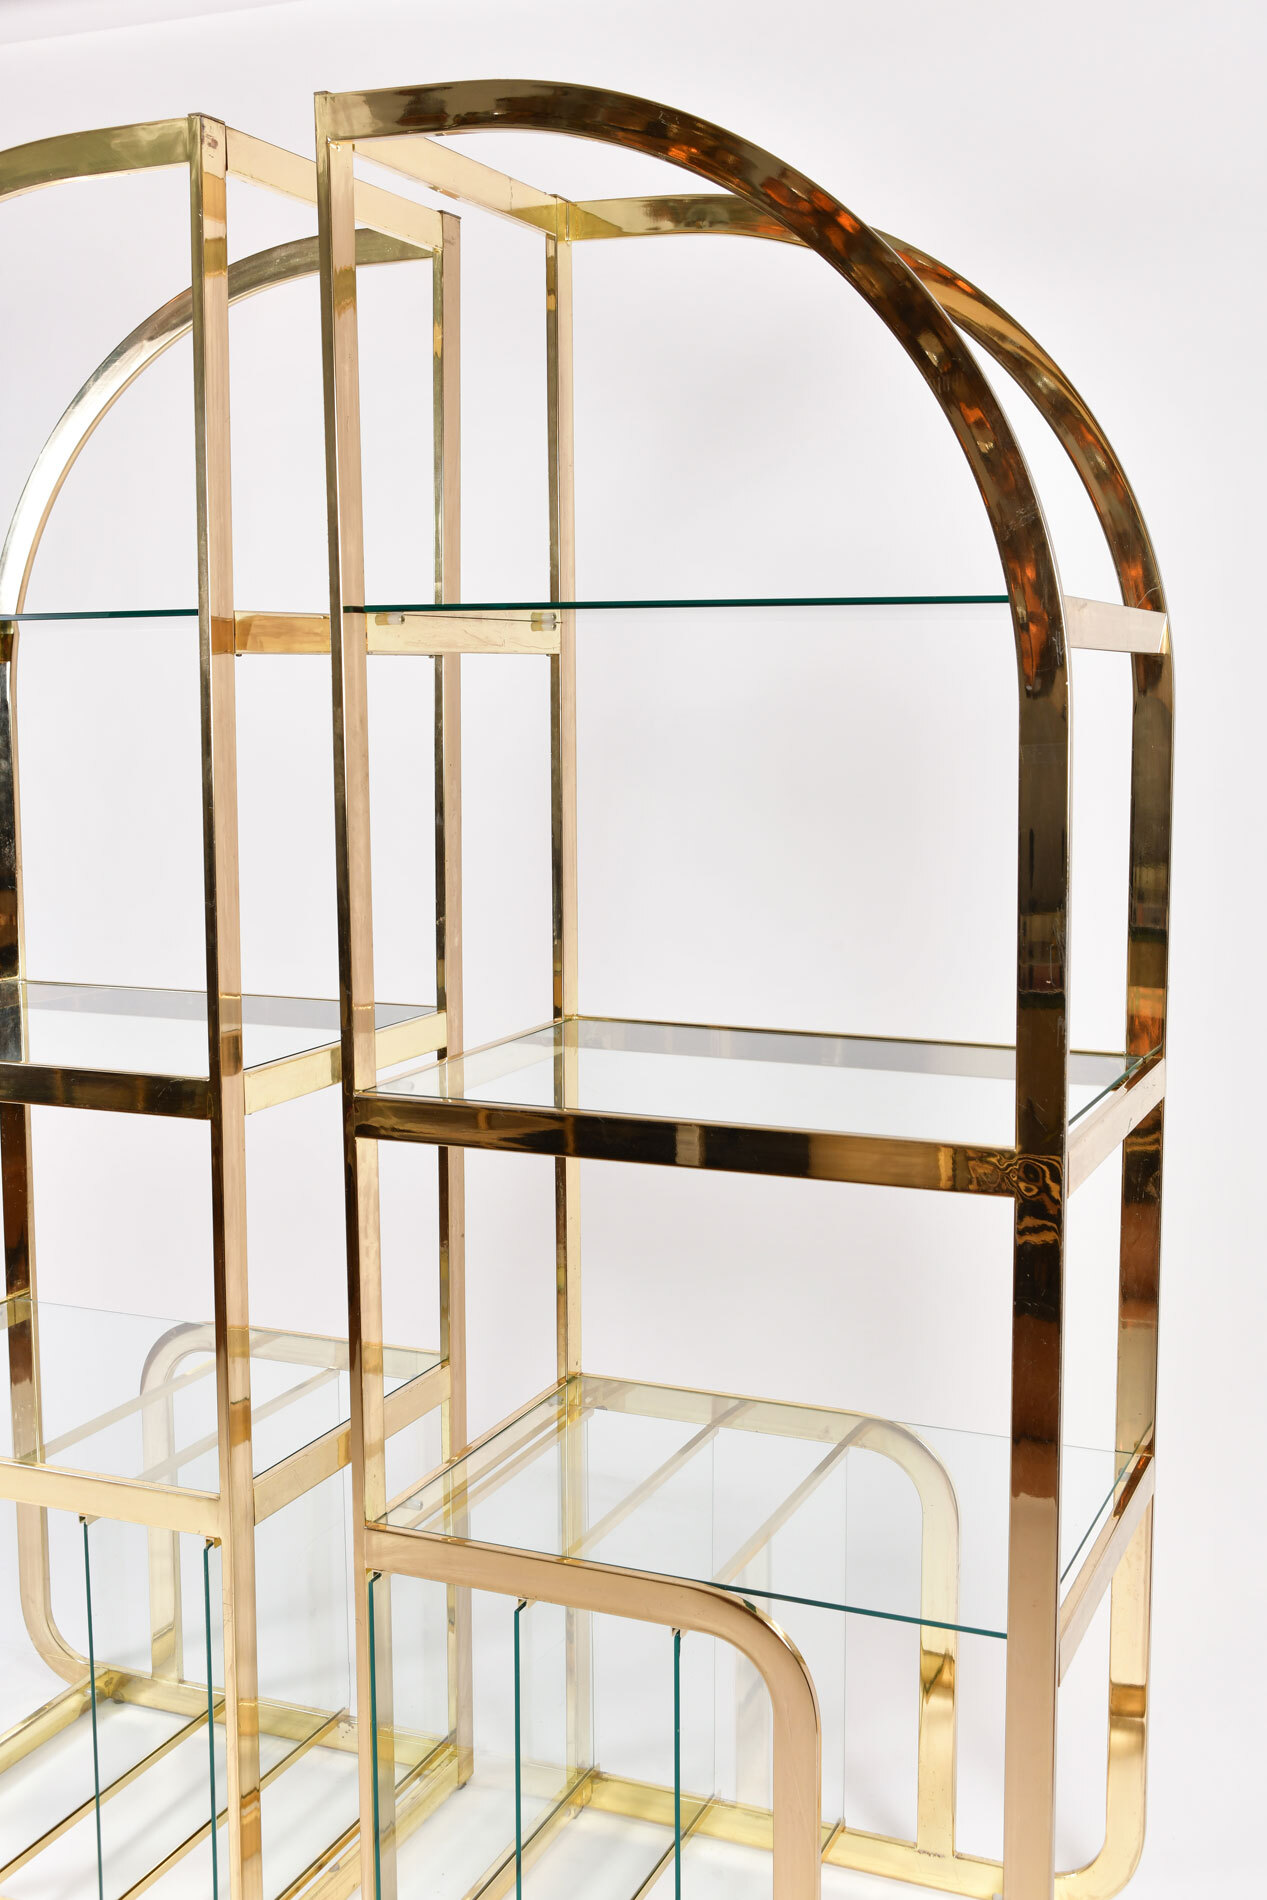 The image for Pair Us Brass Display Shelves 02